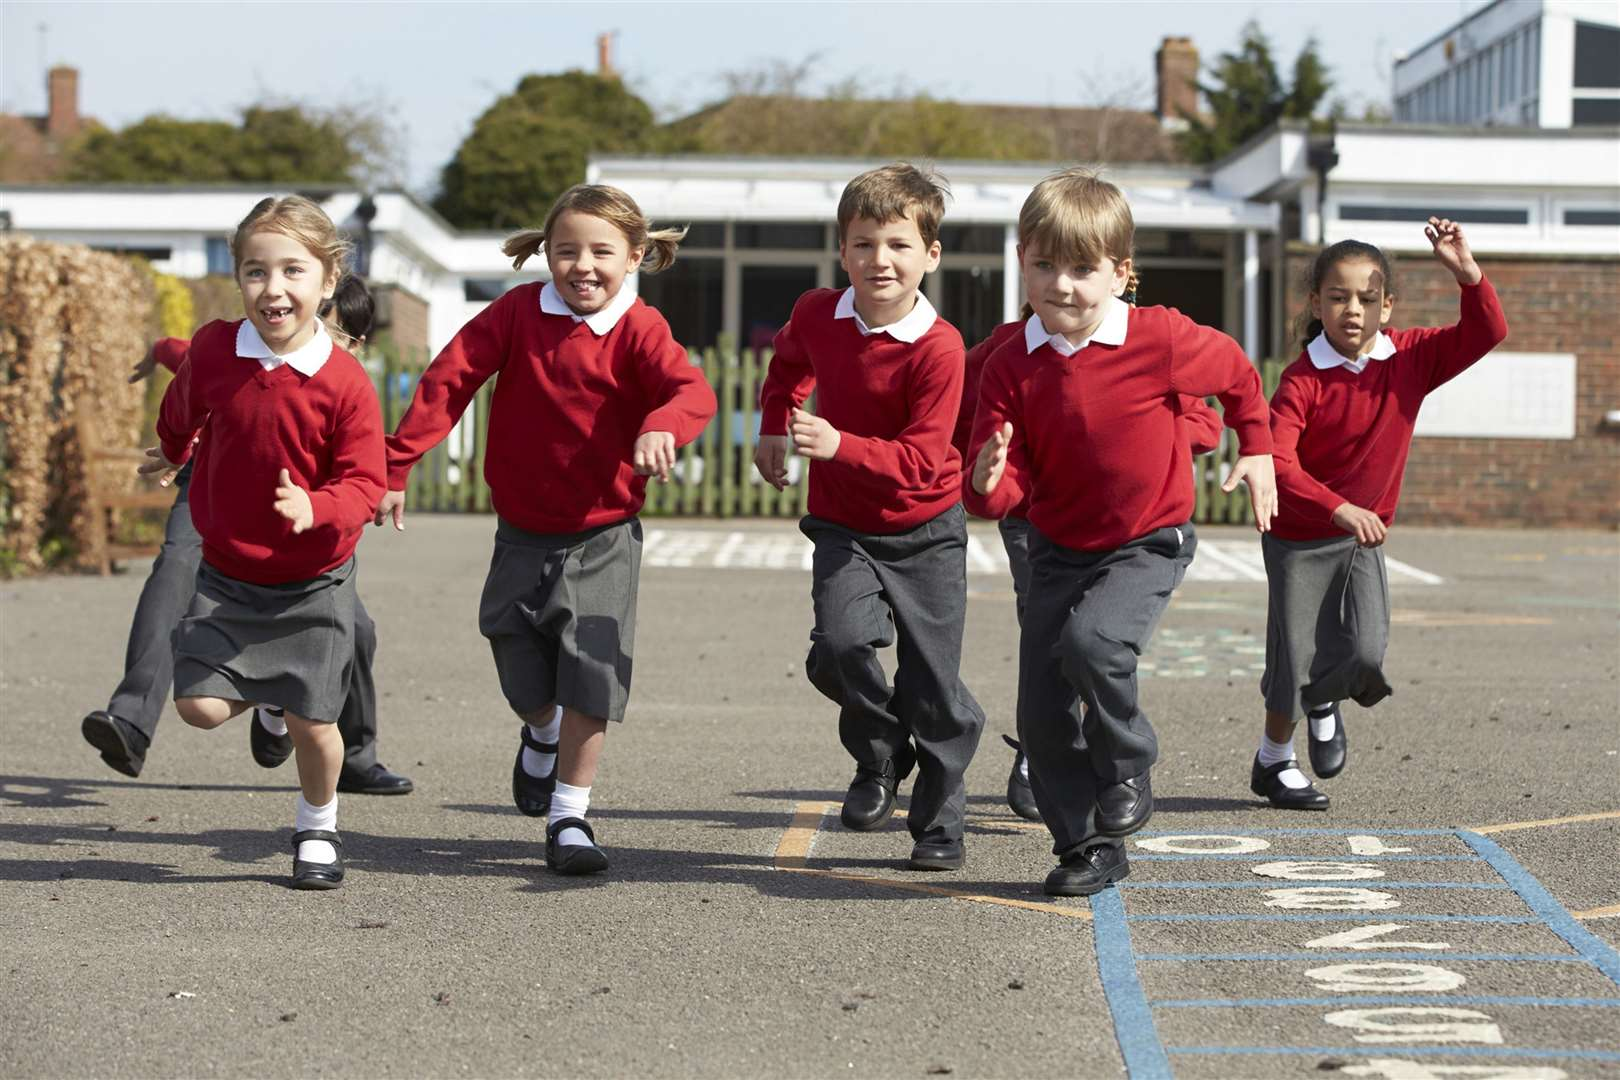 Places for children starting school in September have now been allocated